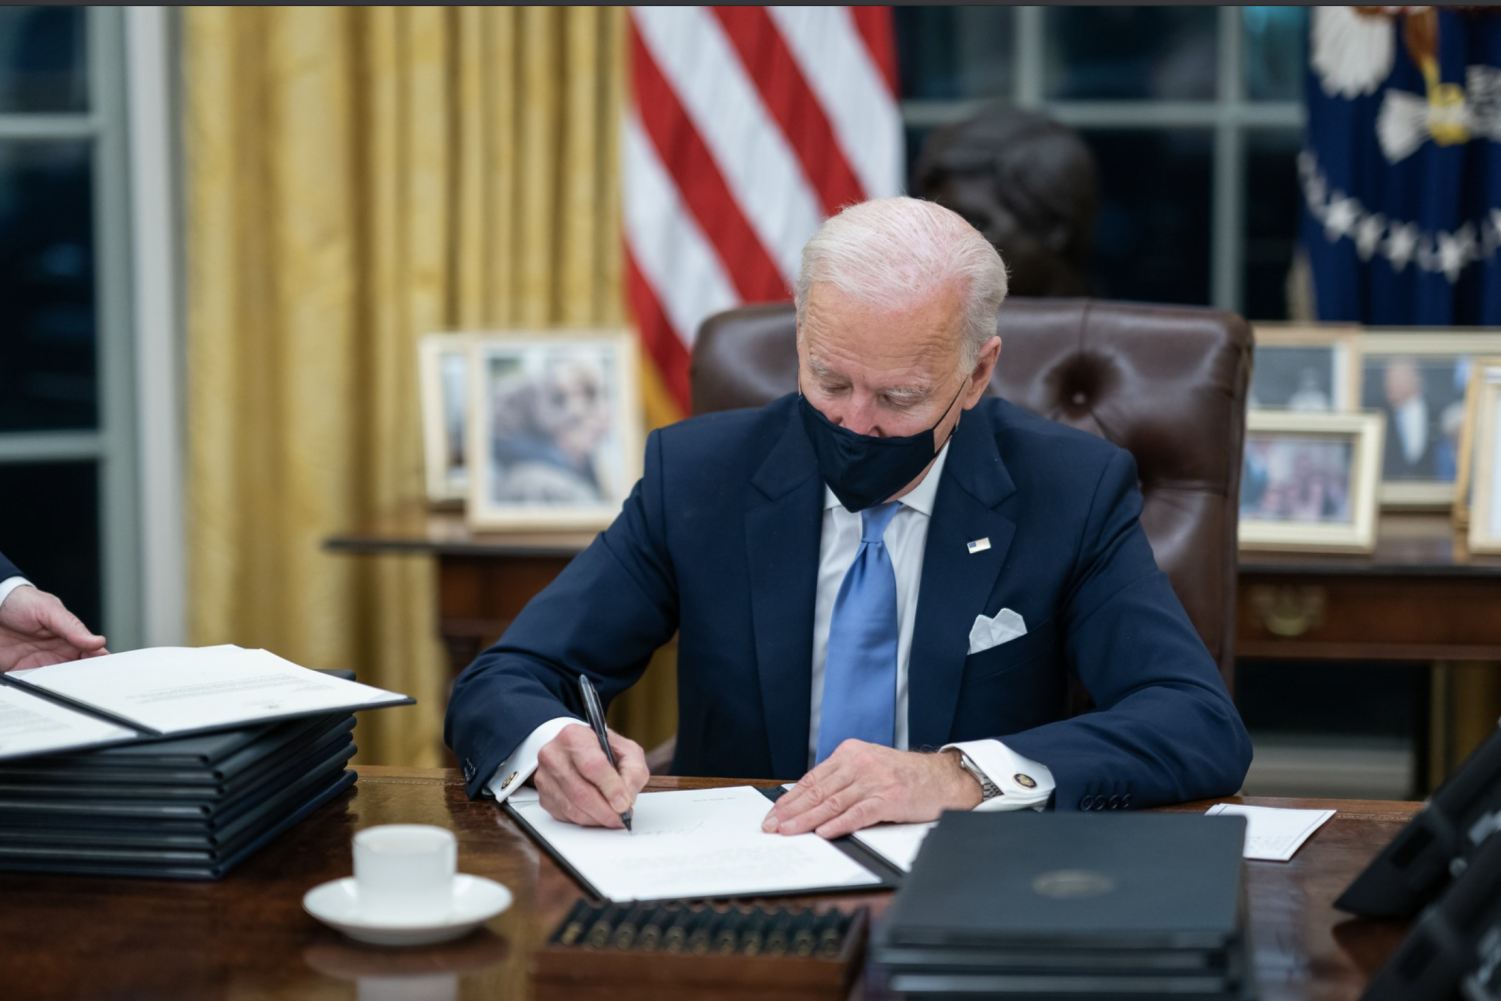 Joe Biden in White House Oval Office signing executive orders.